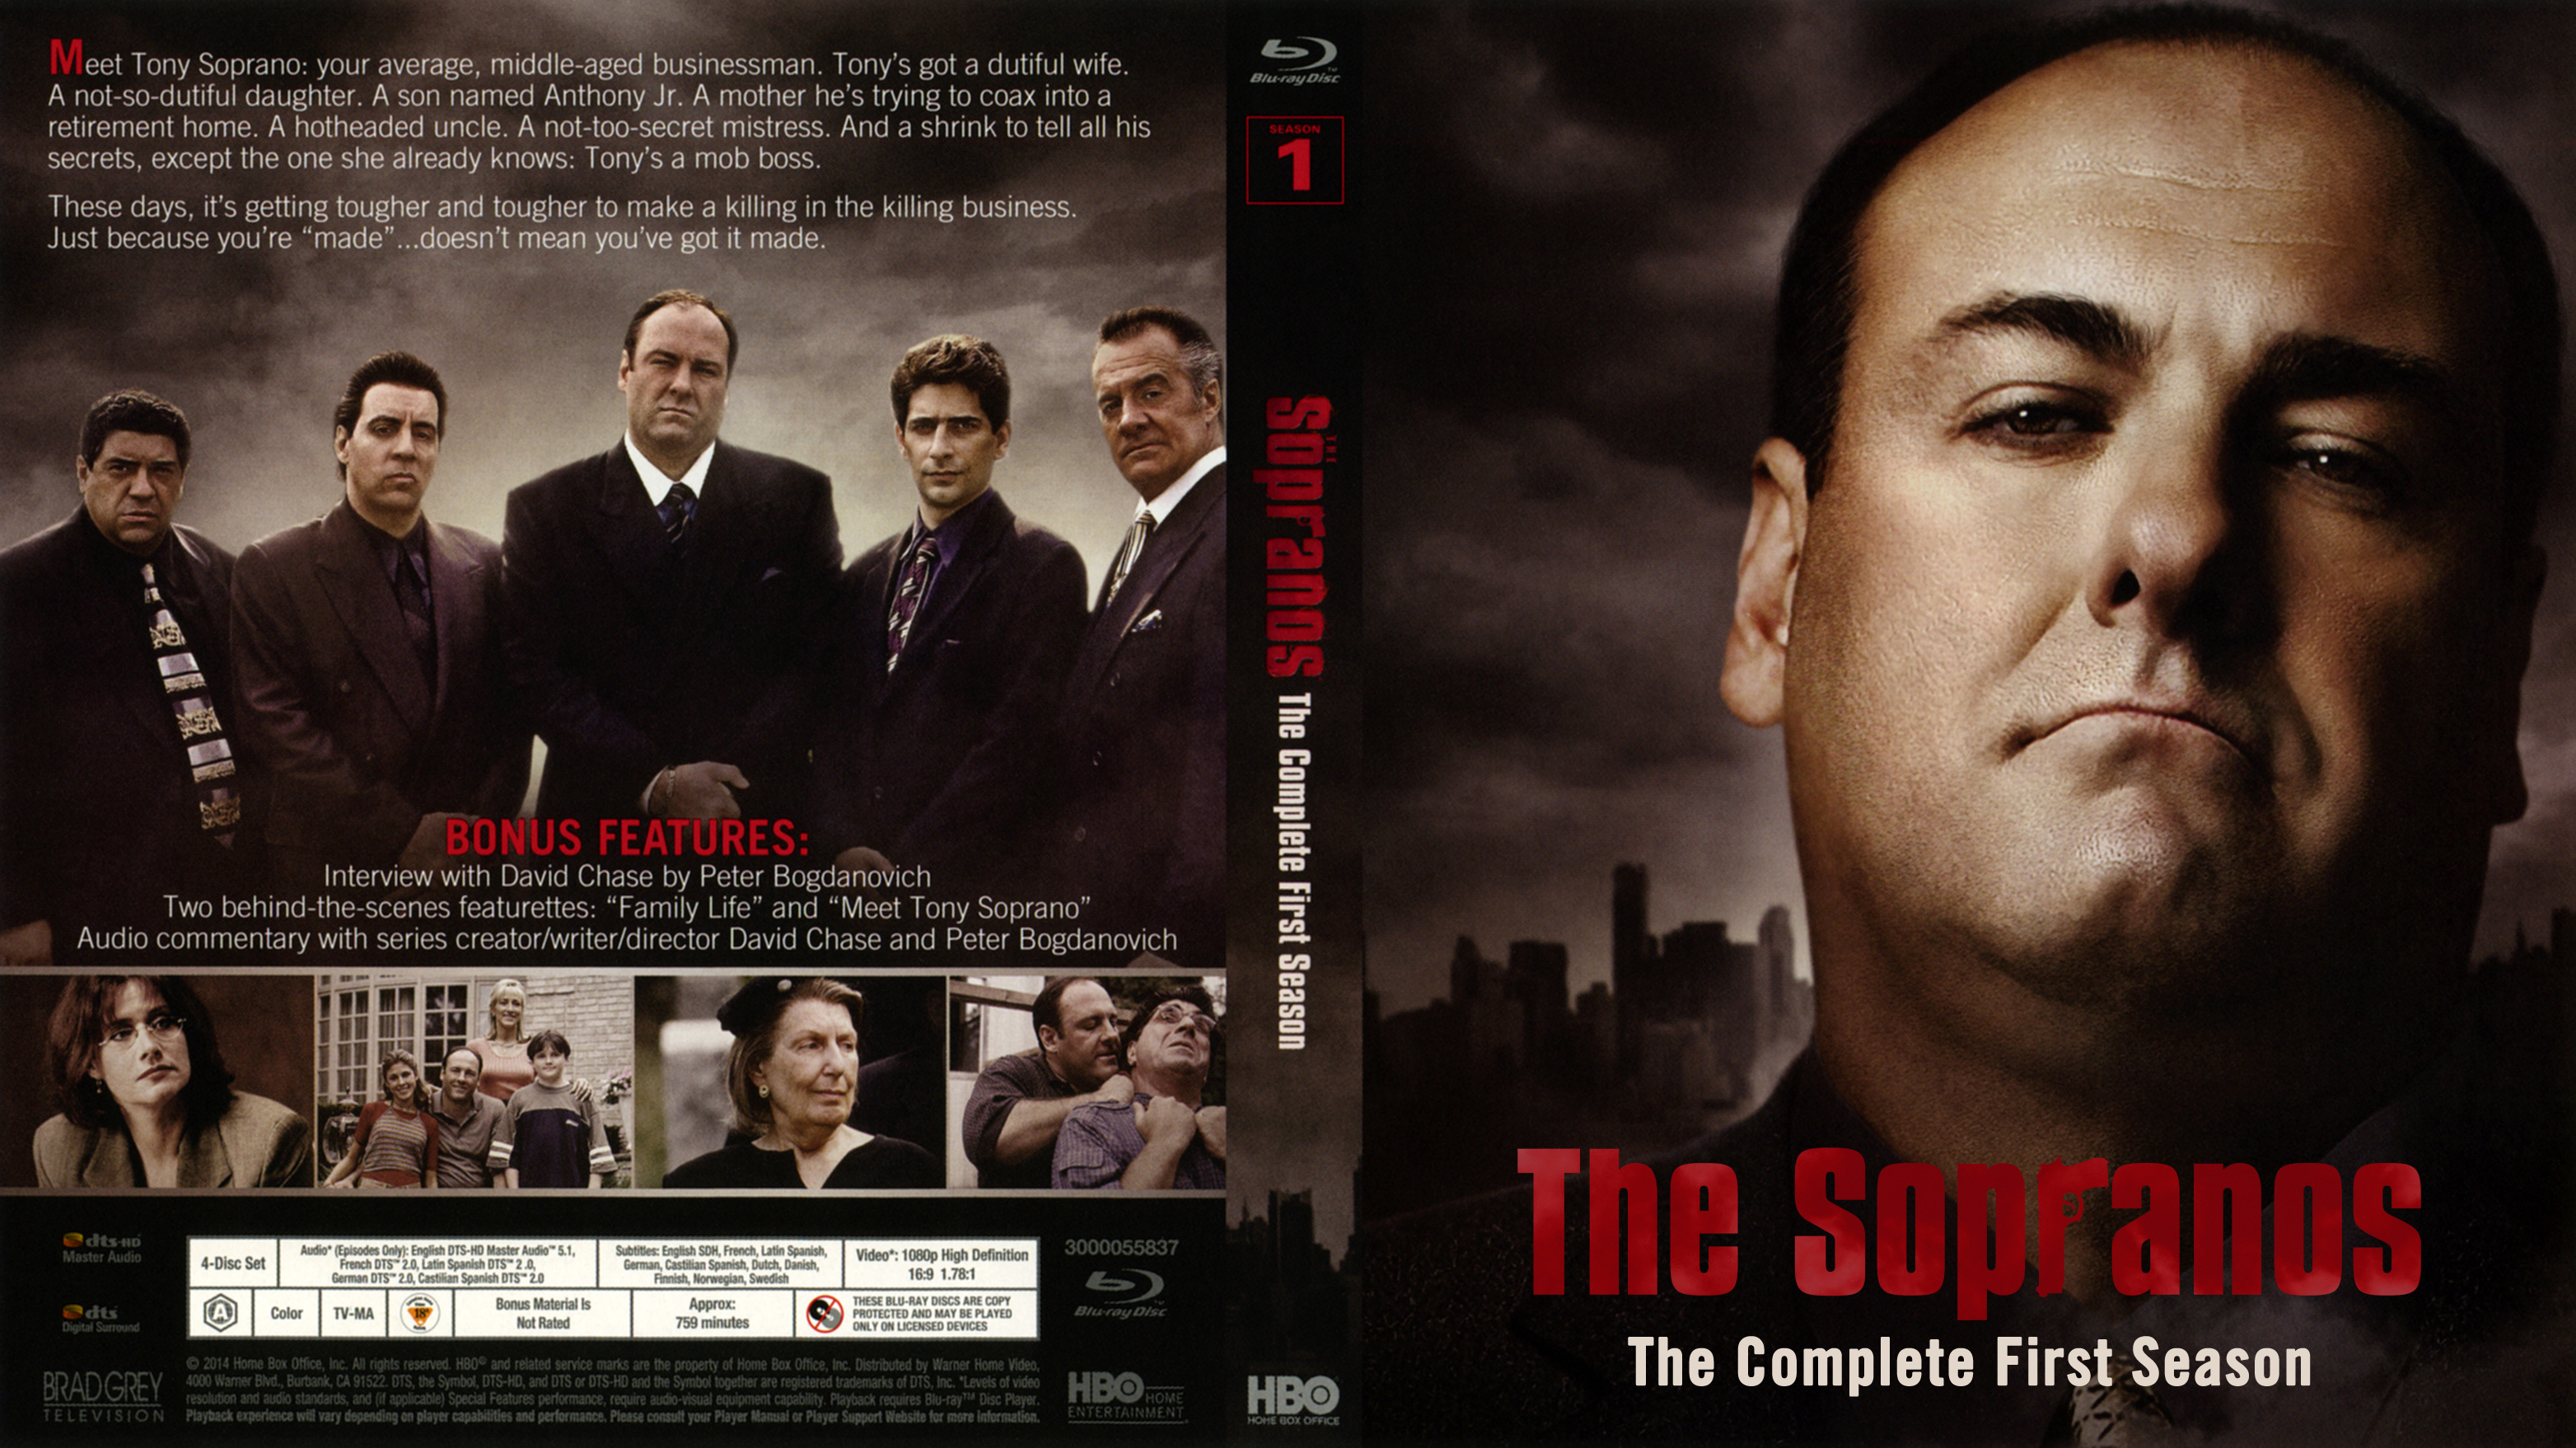 The Sopranos: The Complete Series (1999-2007) - Page 60 - Blu-ray Forum